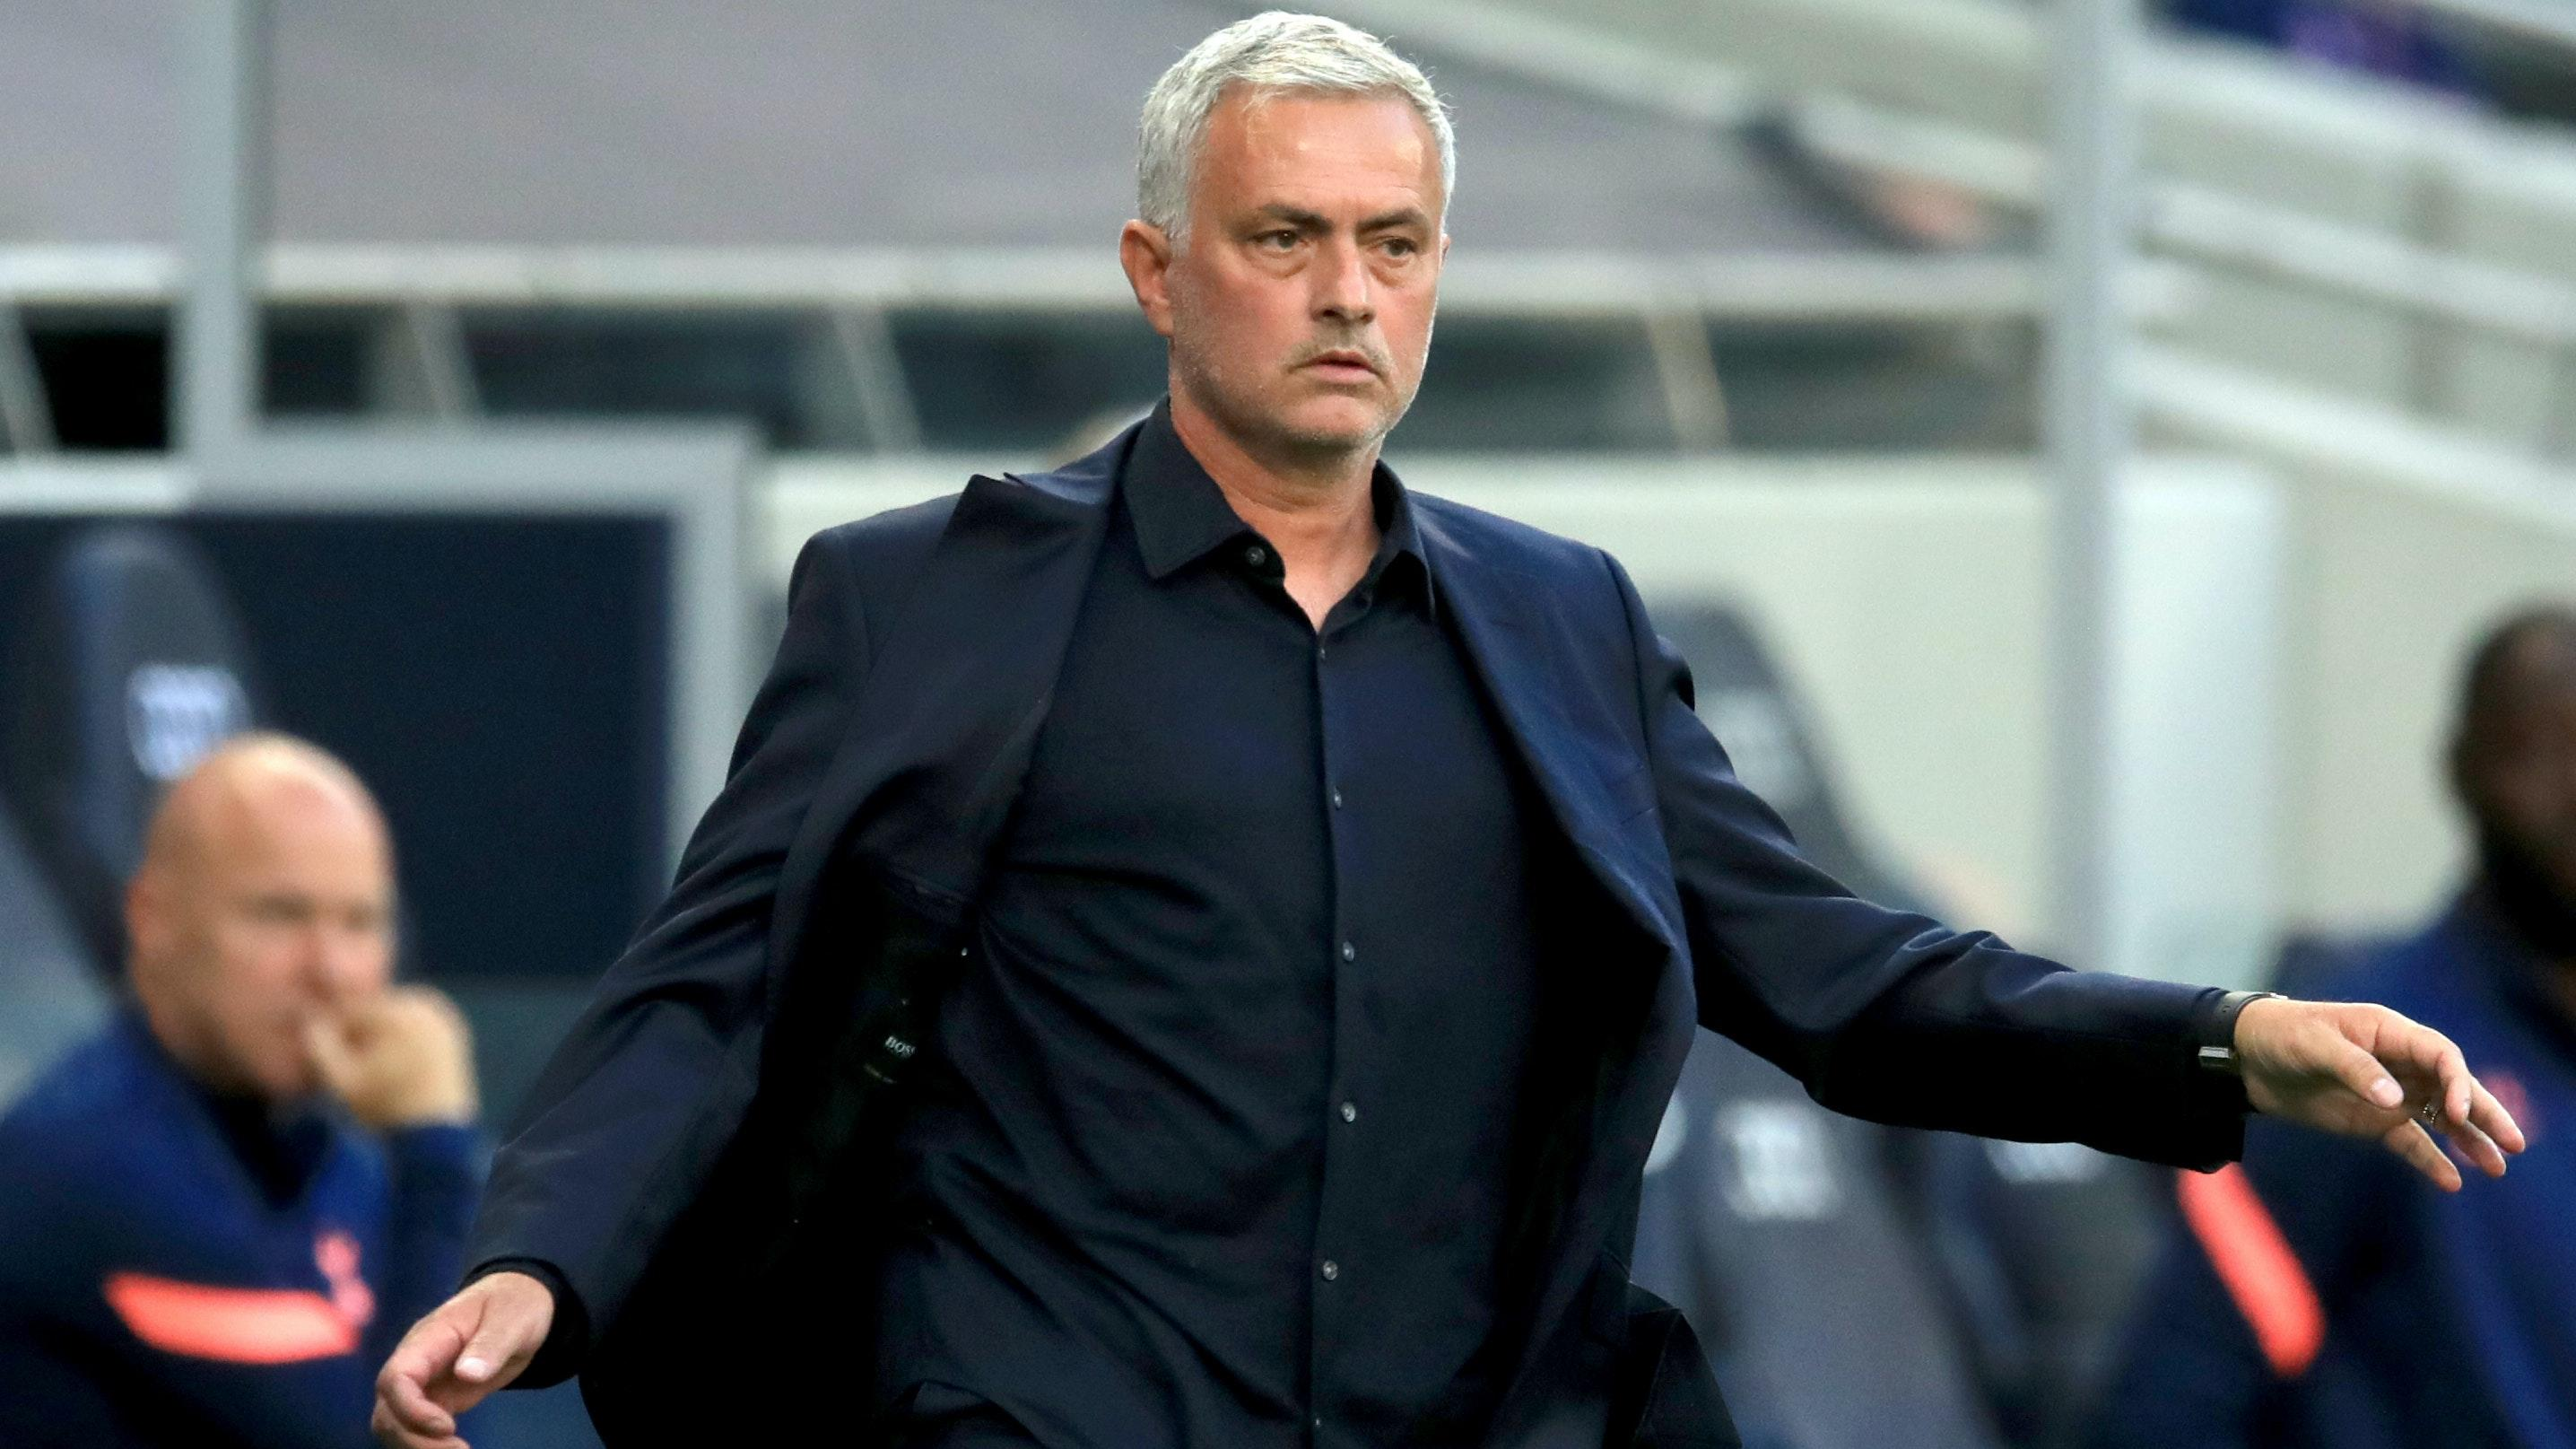 Jose Mourinho says Tottenham's demanding programme is a tough balancing act